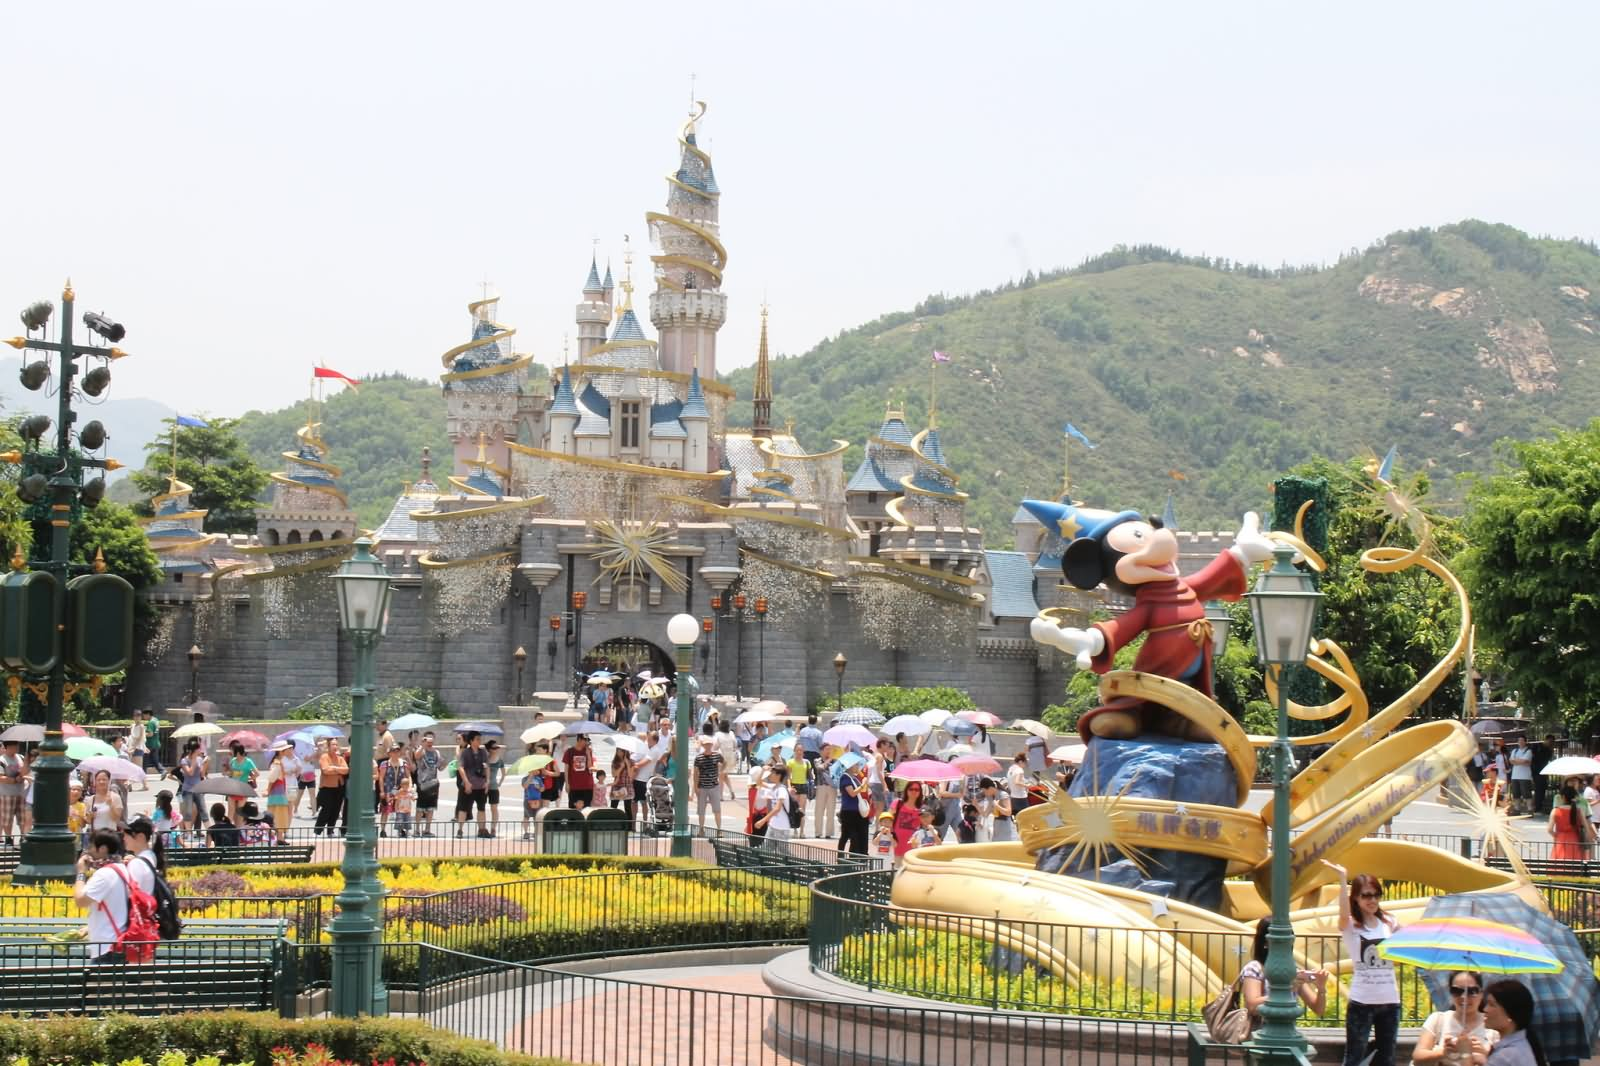 strategic management of hk disneyland Hong kong disneyland case solution,hong kong disneyland case analysis, hong kong disneyland case study solution, disney began internationalizing its operations with the opening of the theme park tokyo disneyland in 1983, which is considered one of the most successful.